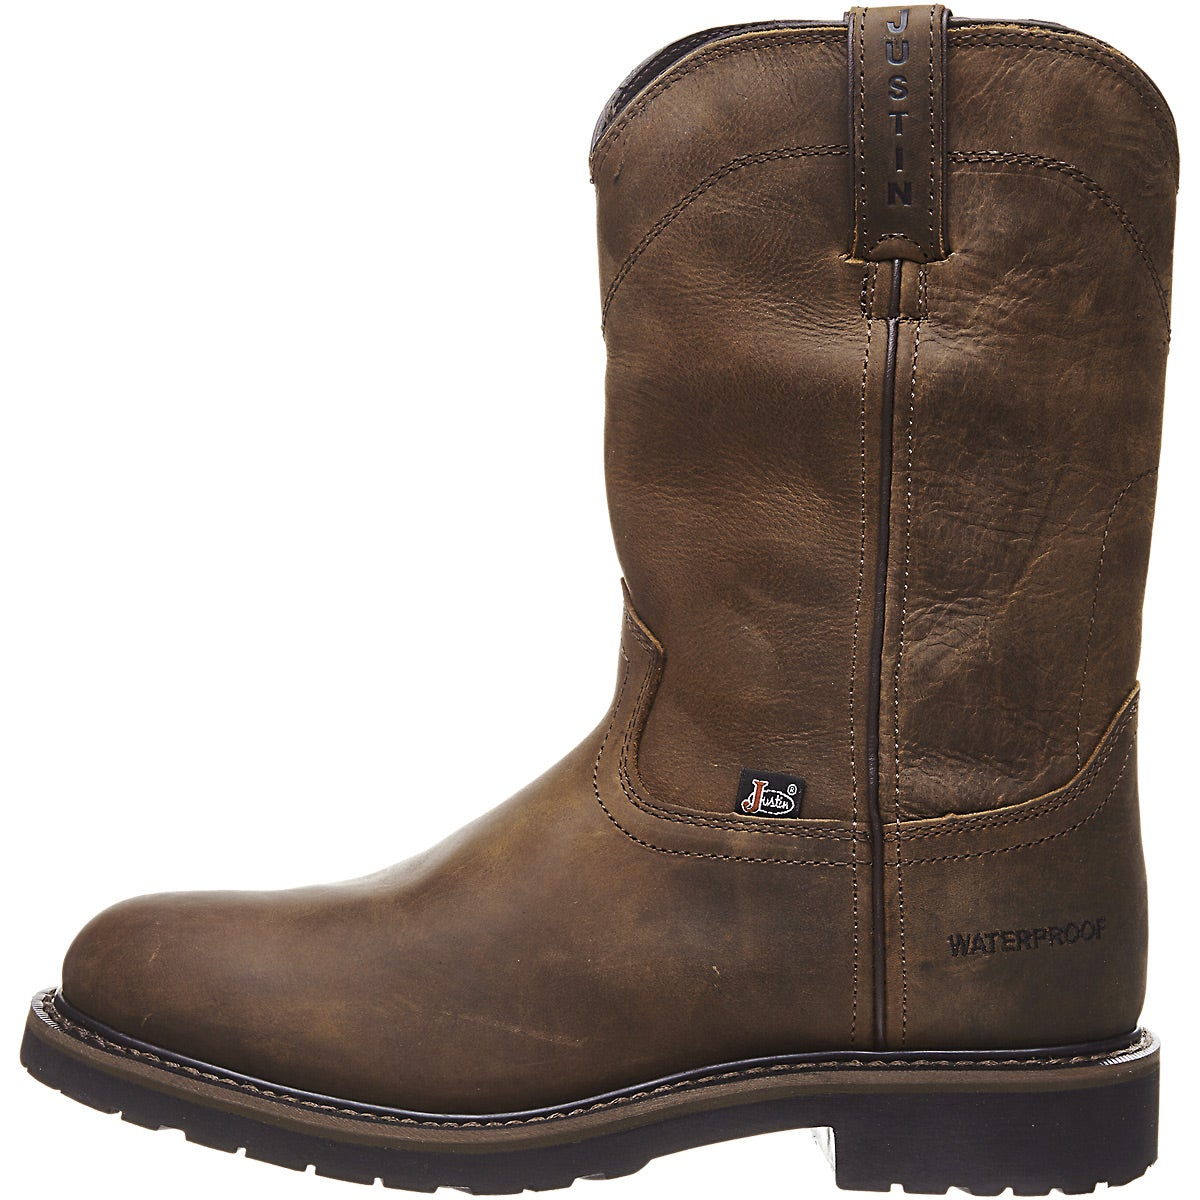 90202b2b7a0 Justin Men's Drywall Waterproof Pull On Work Boots - Riding Warehouse